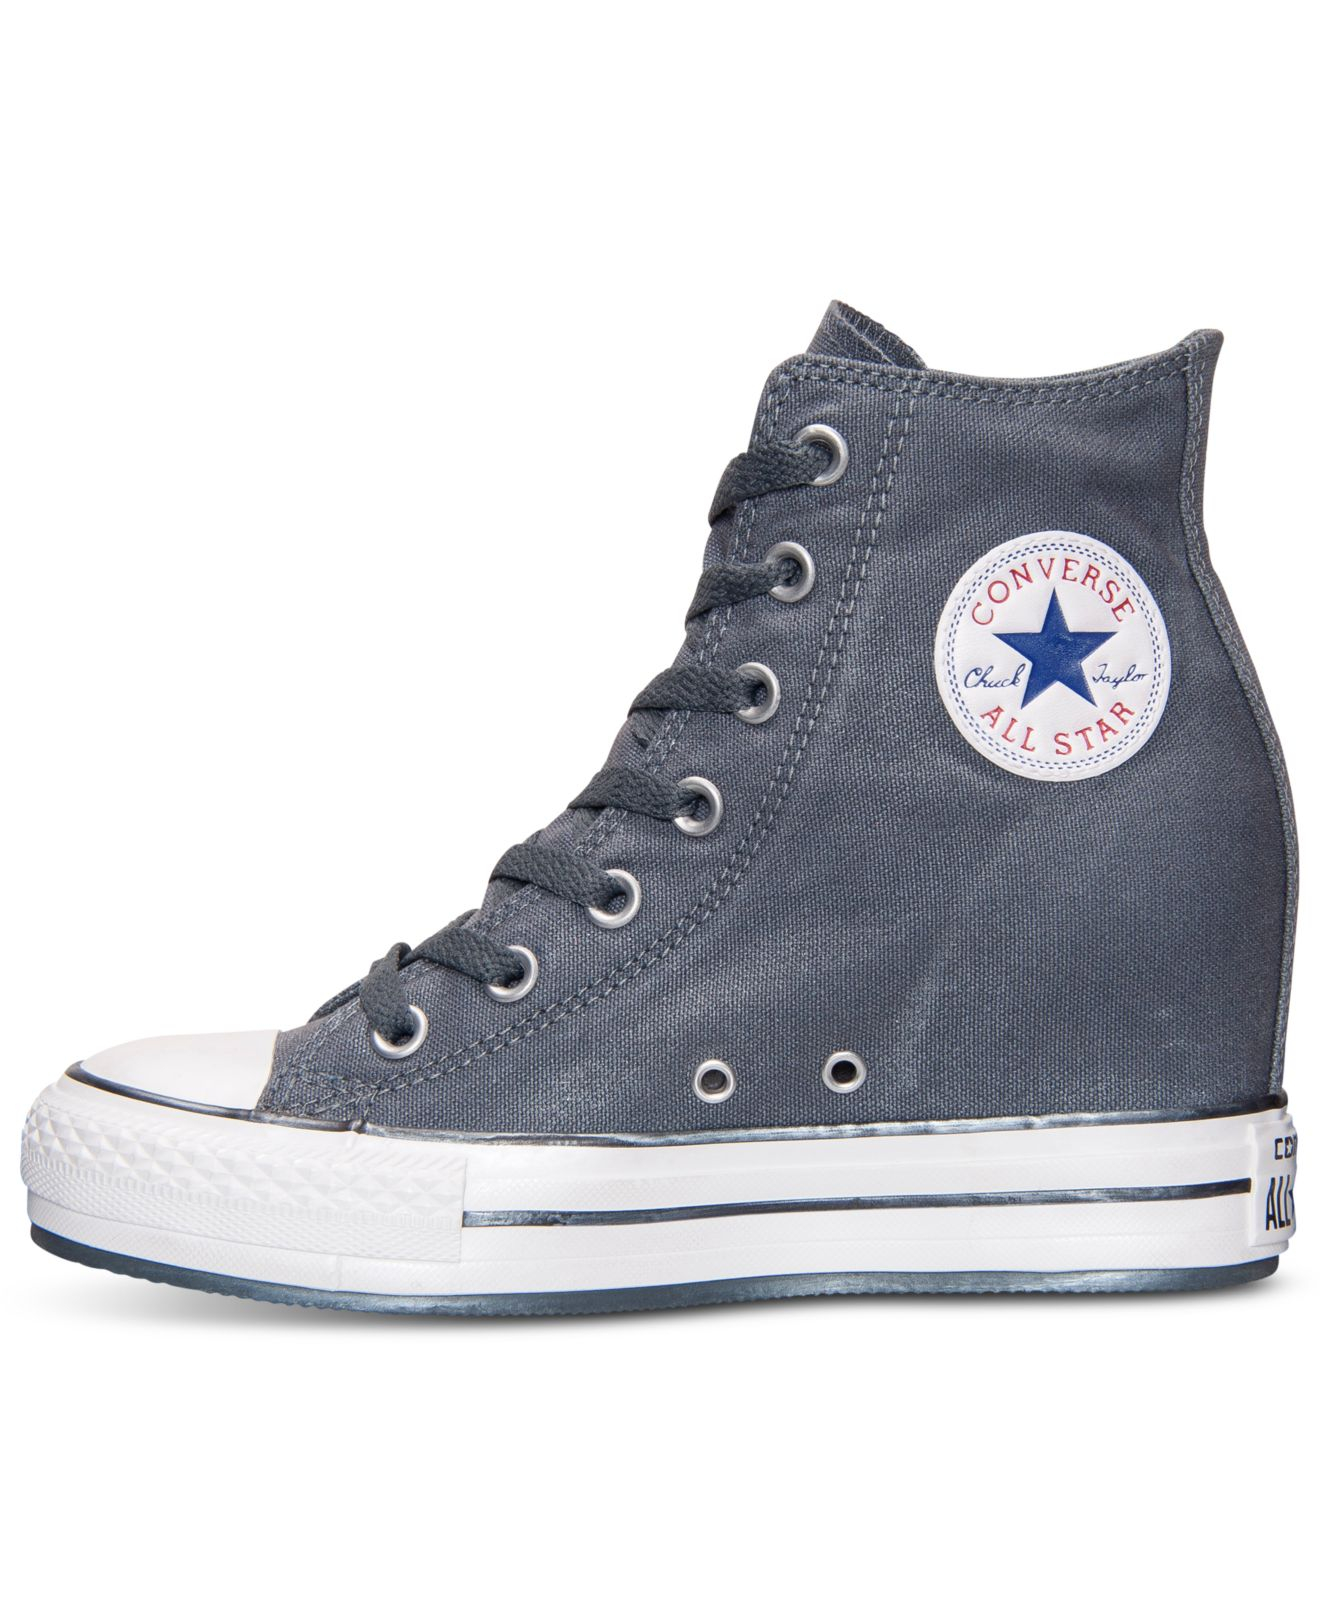 9c502b53f60 Lyst - Converse Women S Chuck Taylor All Star Platform Plus Sparkle ...